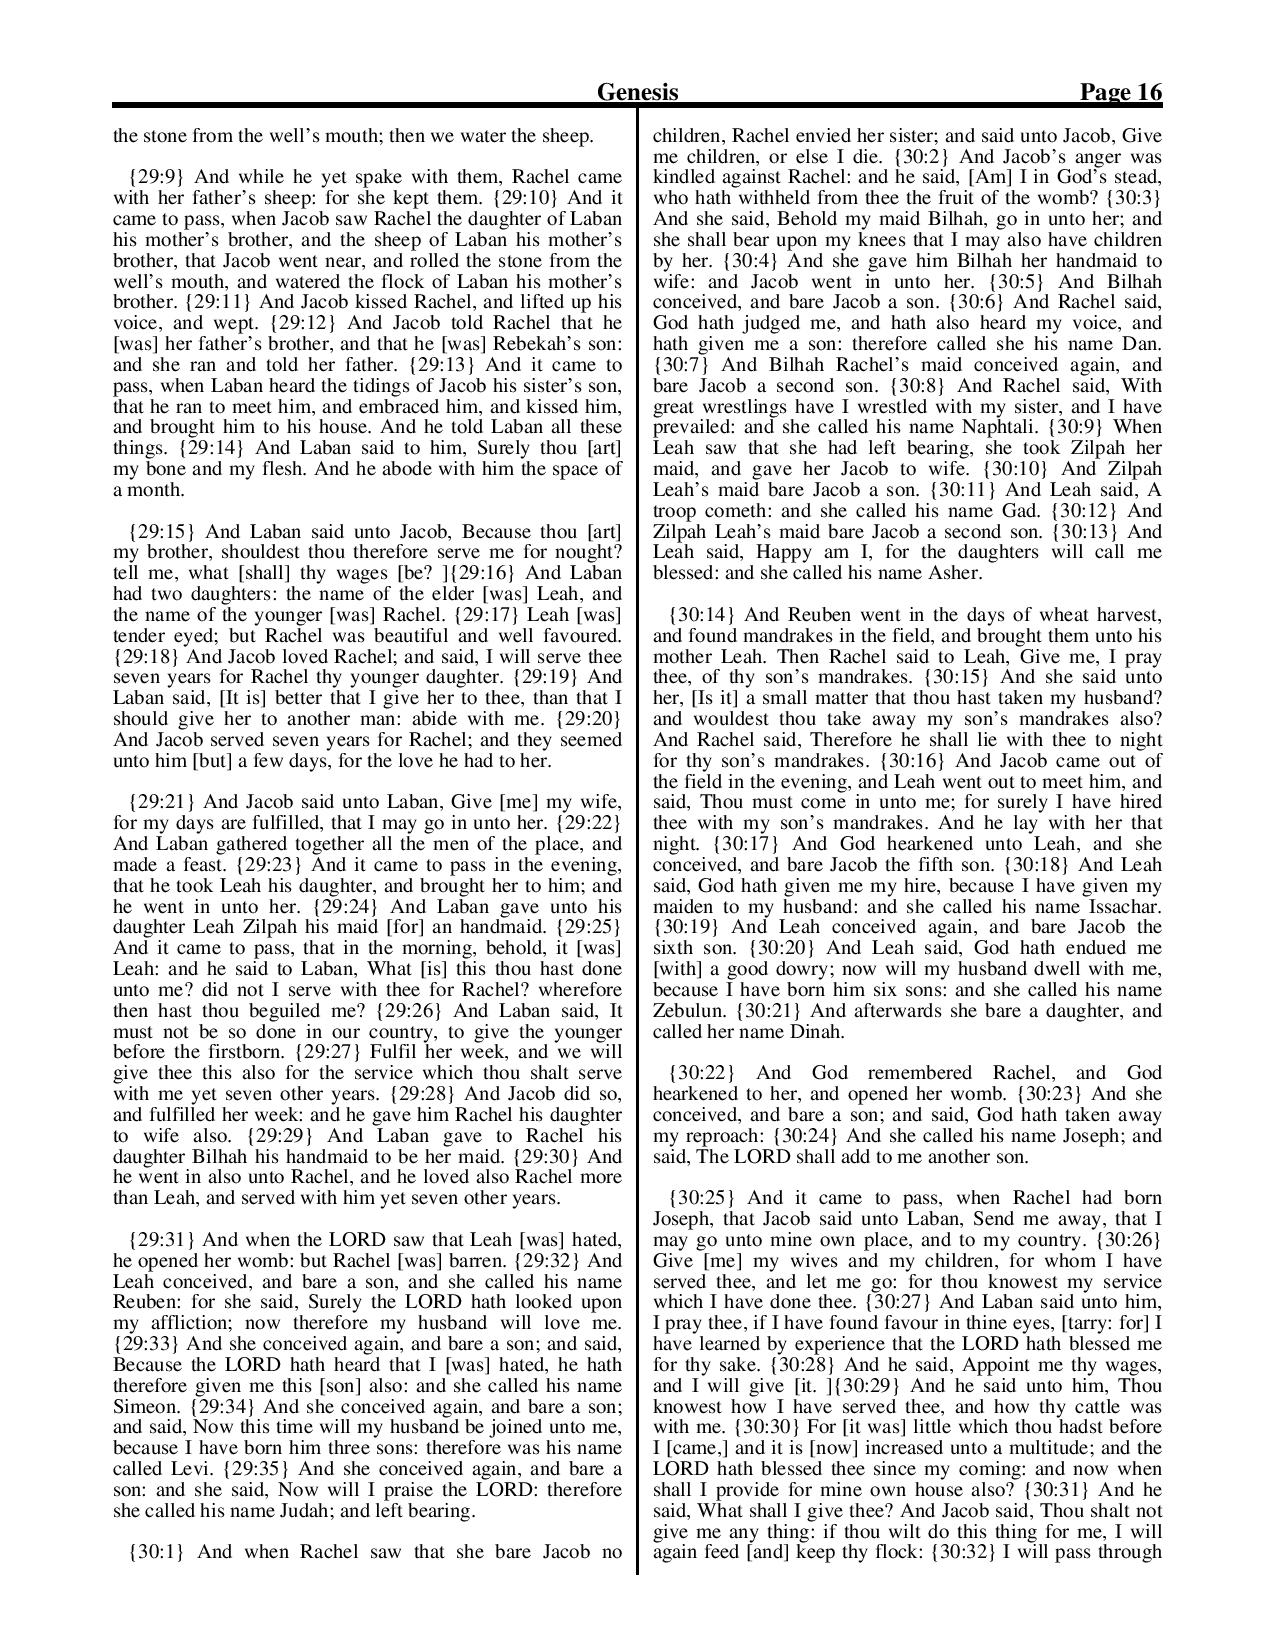 King-James-Bible-KJV-Bible-PDF-page-037